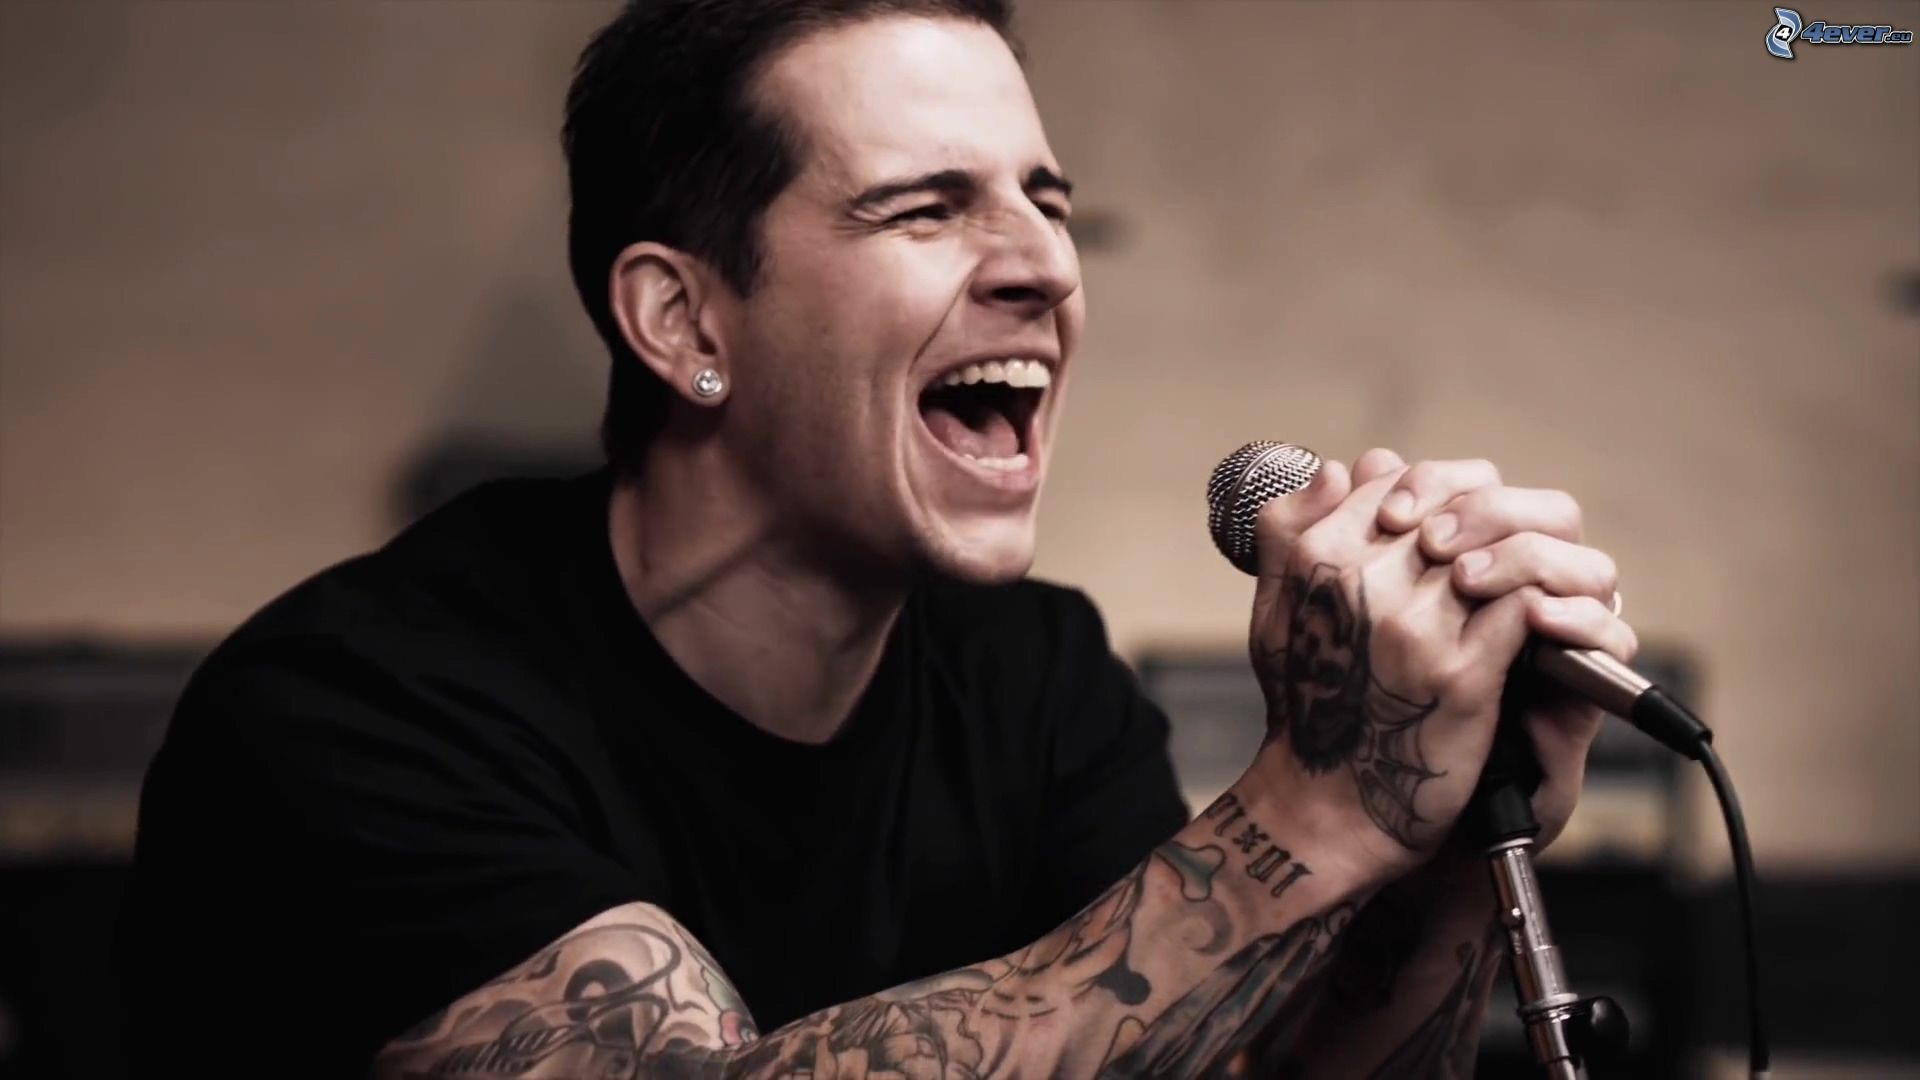 M Shadows Singing Wallpaper wwwgalleryhipcom   The 1920x1080